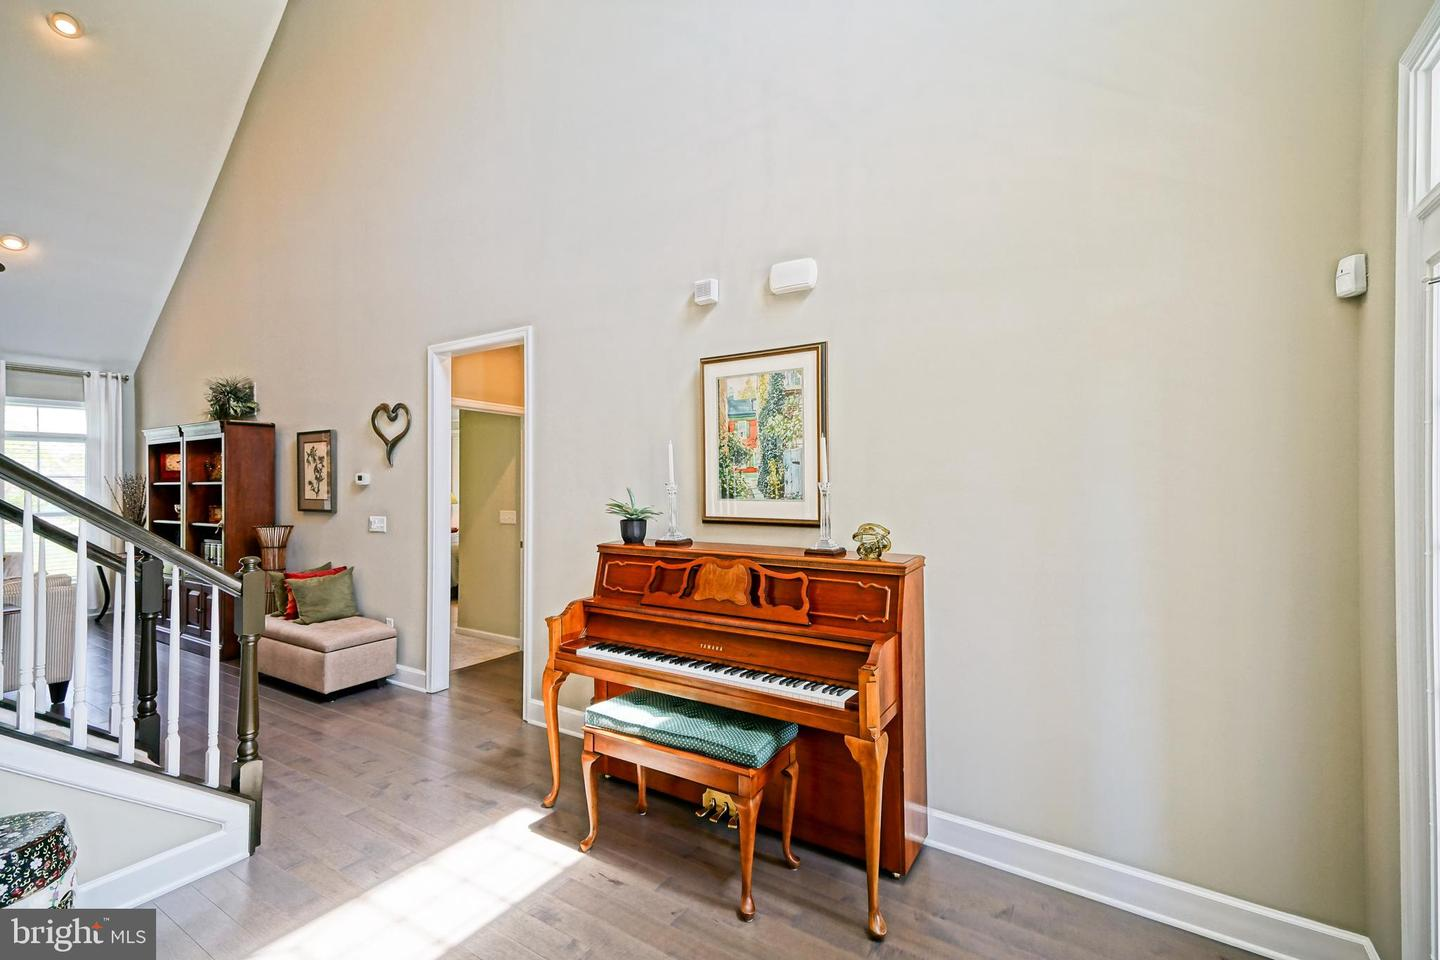 DESU139128-301667379145-2019-08-05-10-43-56 35222 Overfalls Dr N | Lewes, DE Real Estate For Sale | MLS# Desu139128  - Lee Ann Group